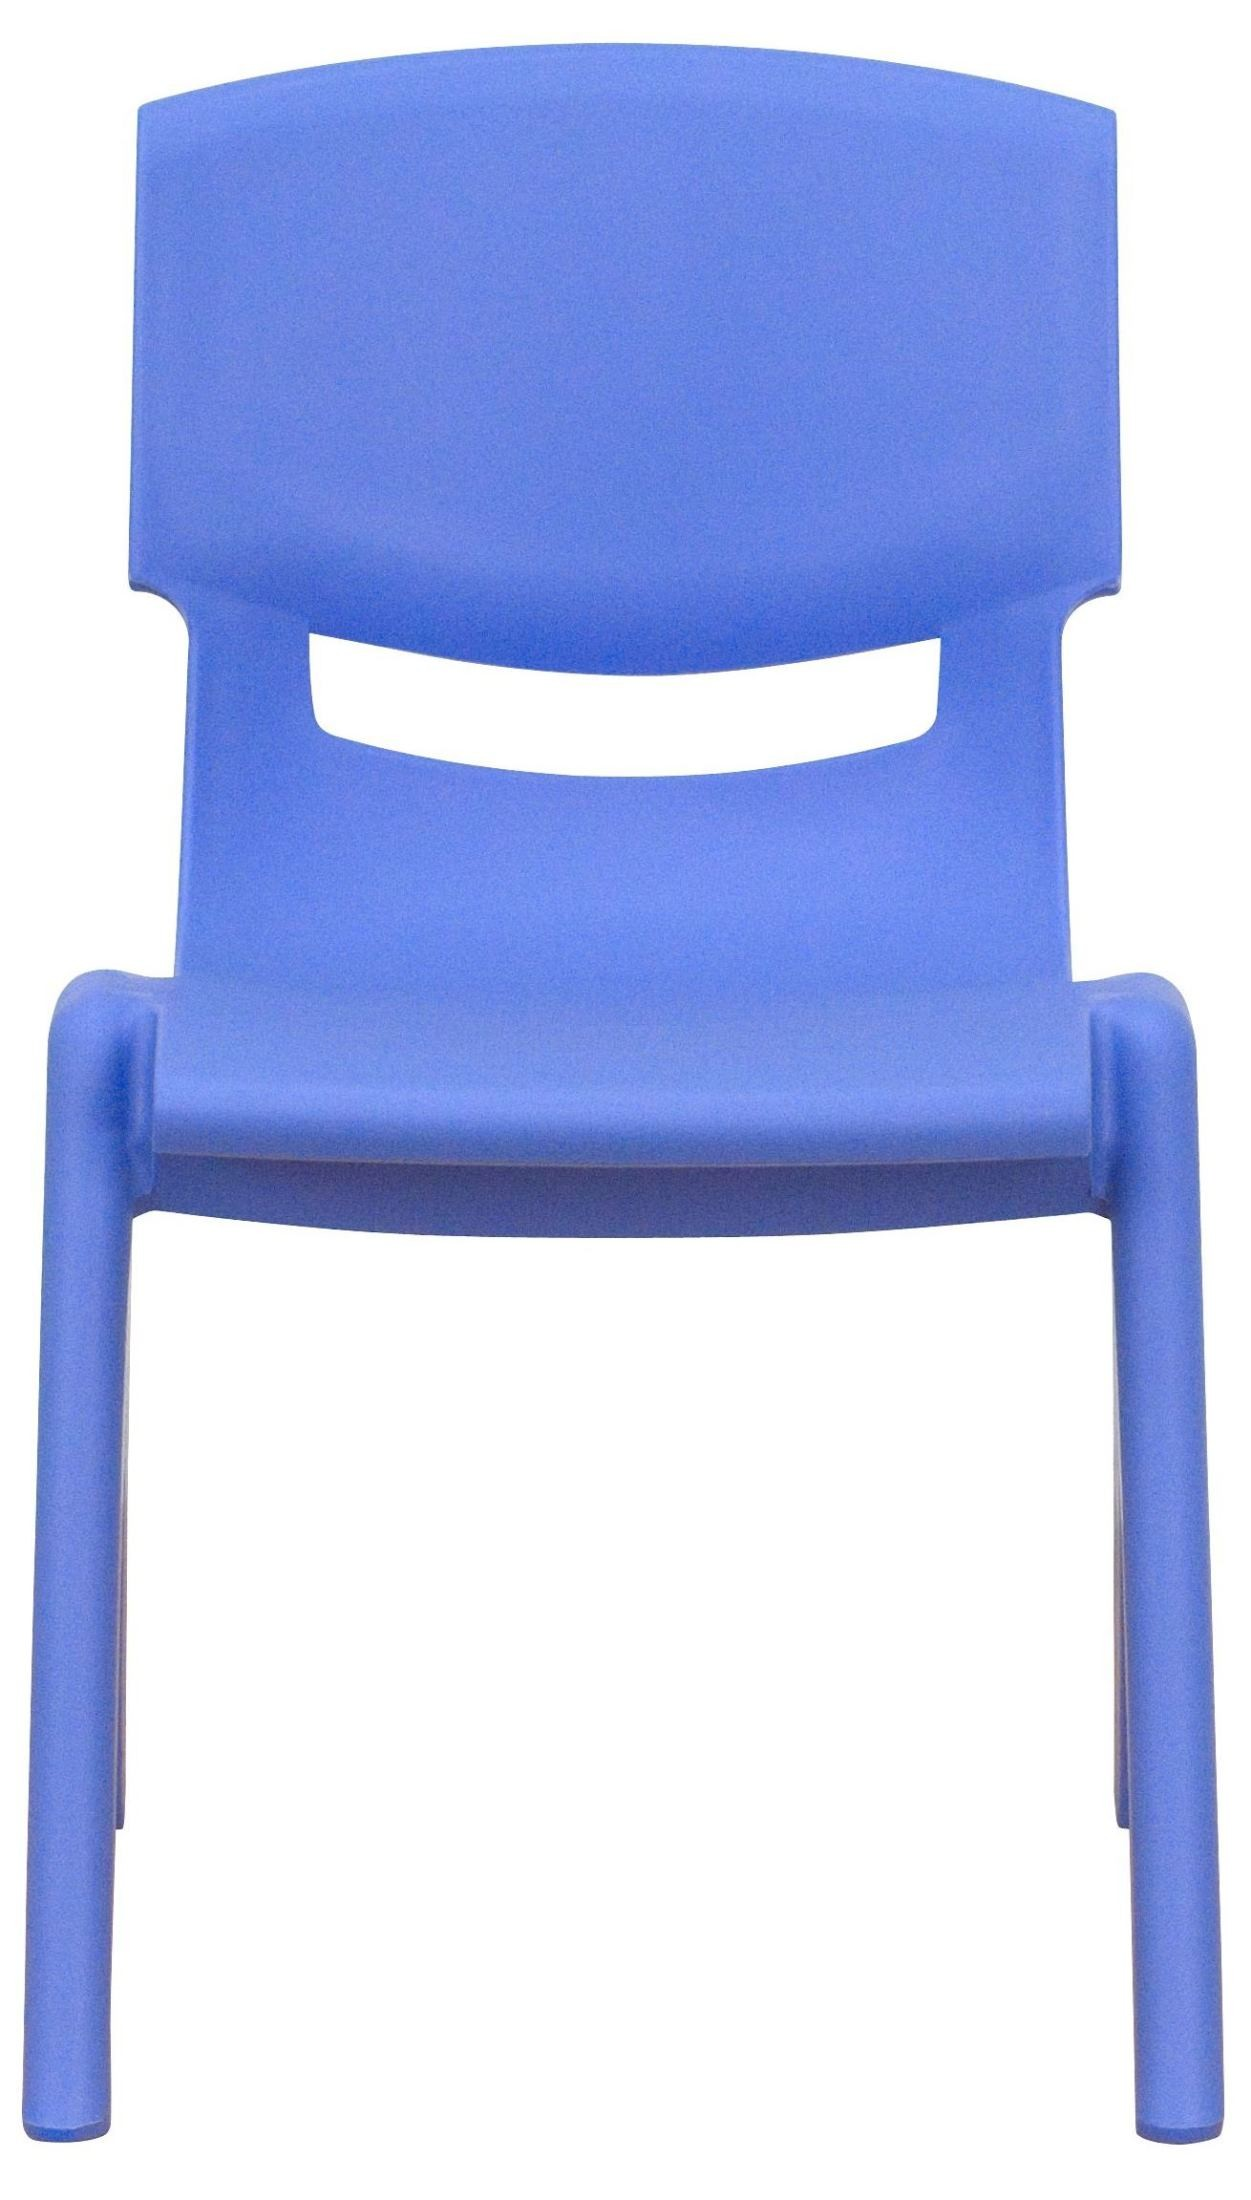 22 h blue plastic stackable school chair from renegade yu